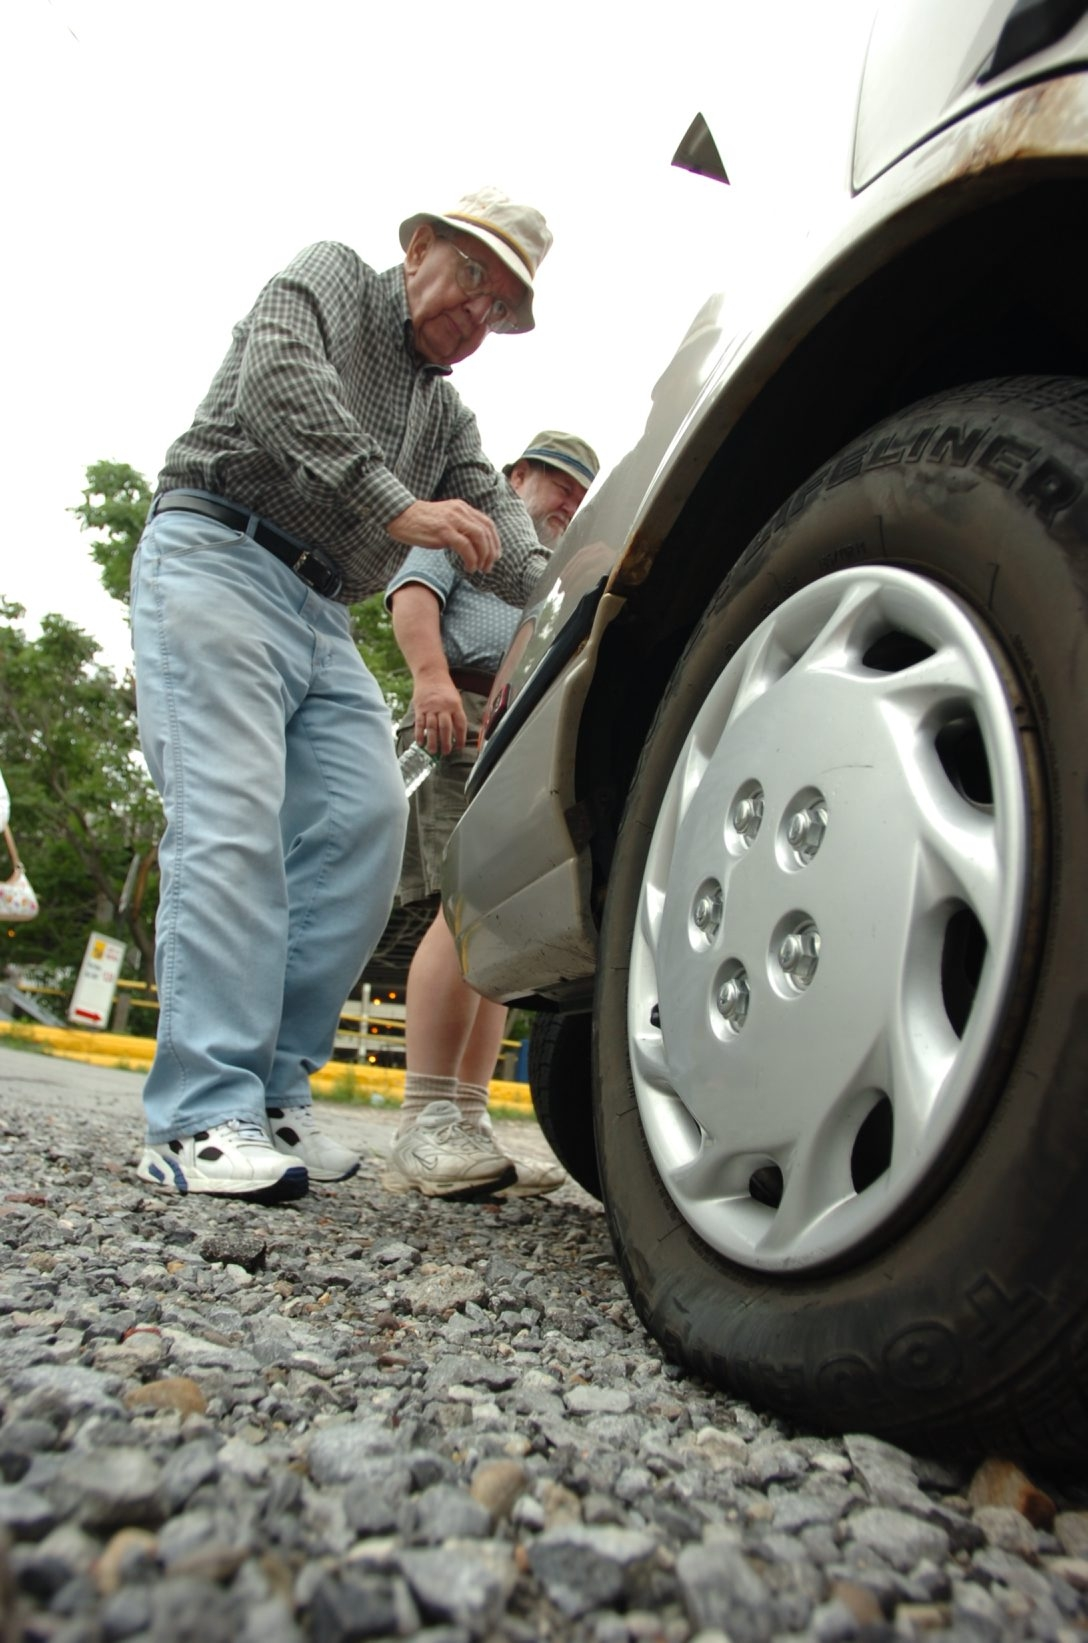 A large percentage of tire repairs are not up to industry standards. The proper way to repair a tire is to remove it from the rim and fix it from the inside.